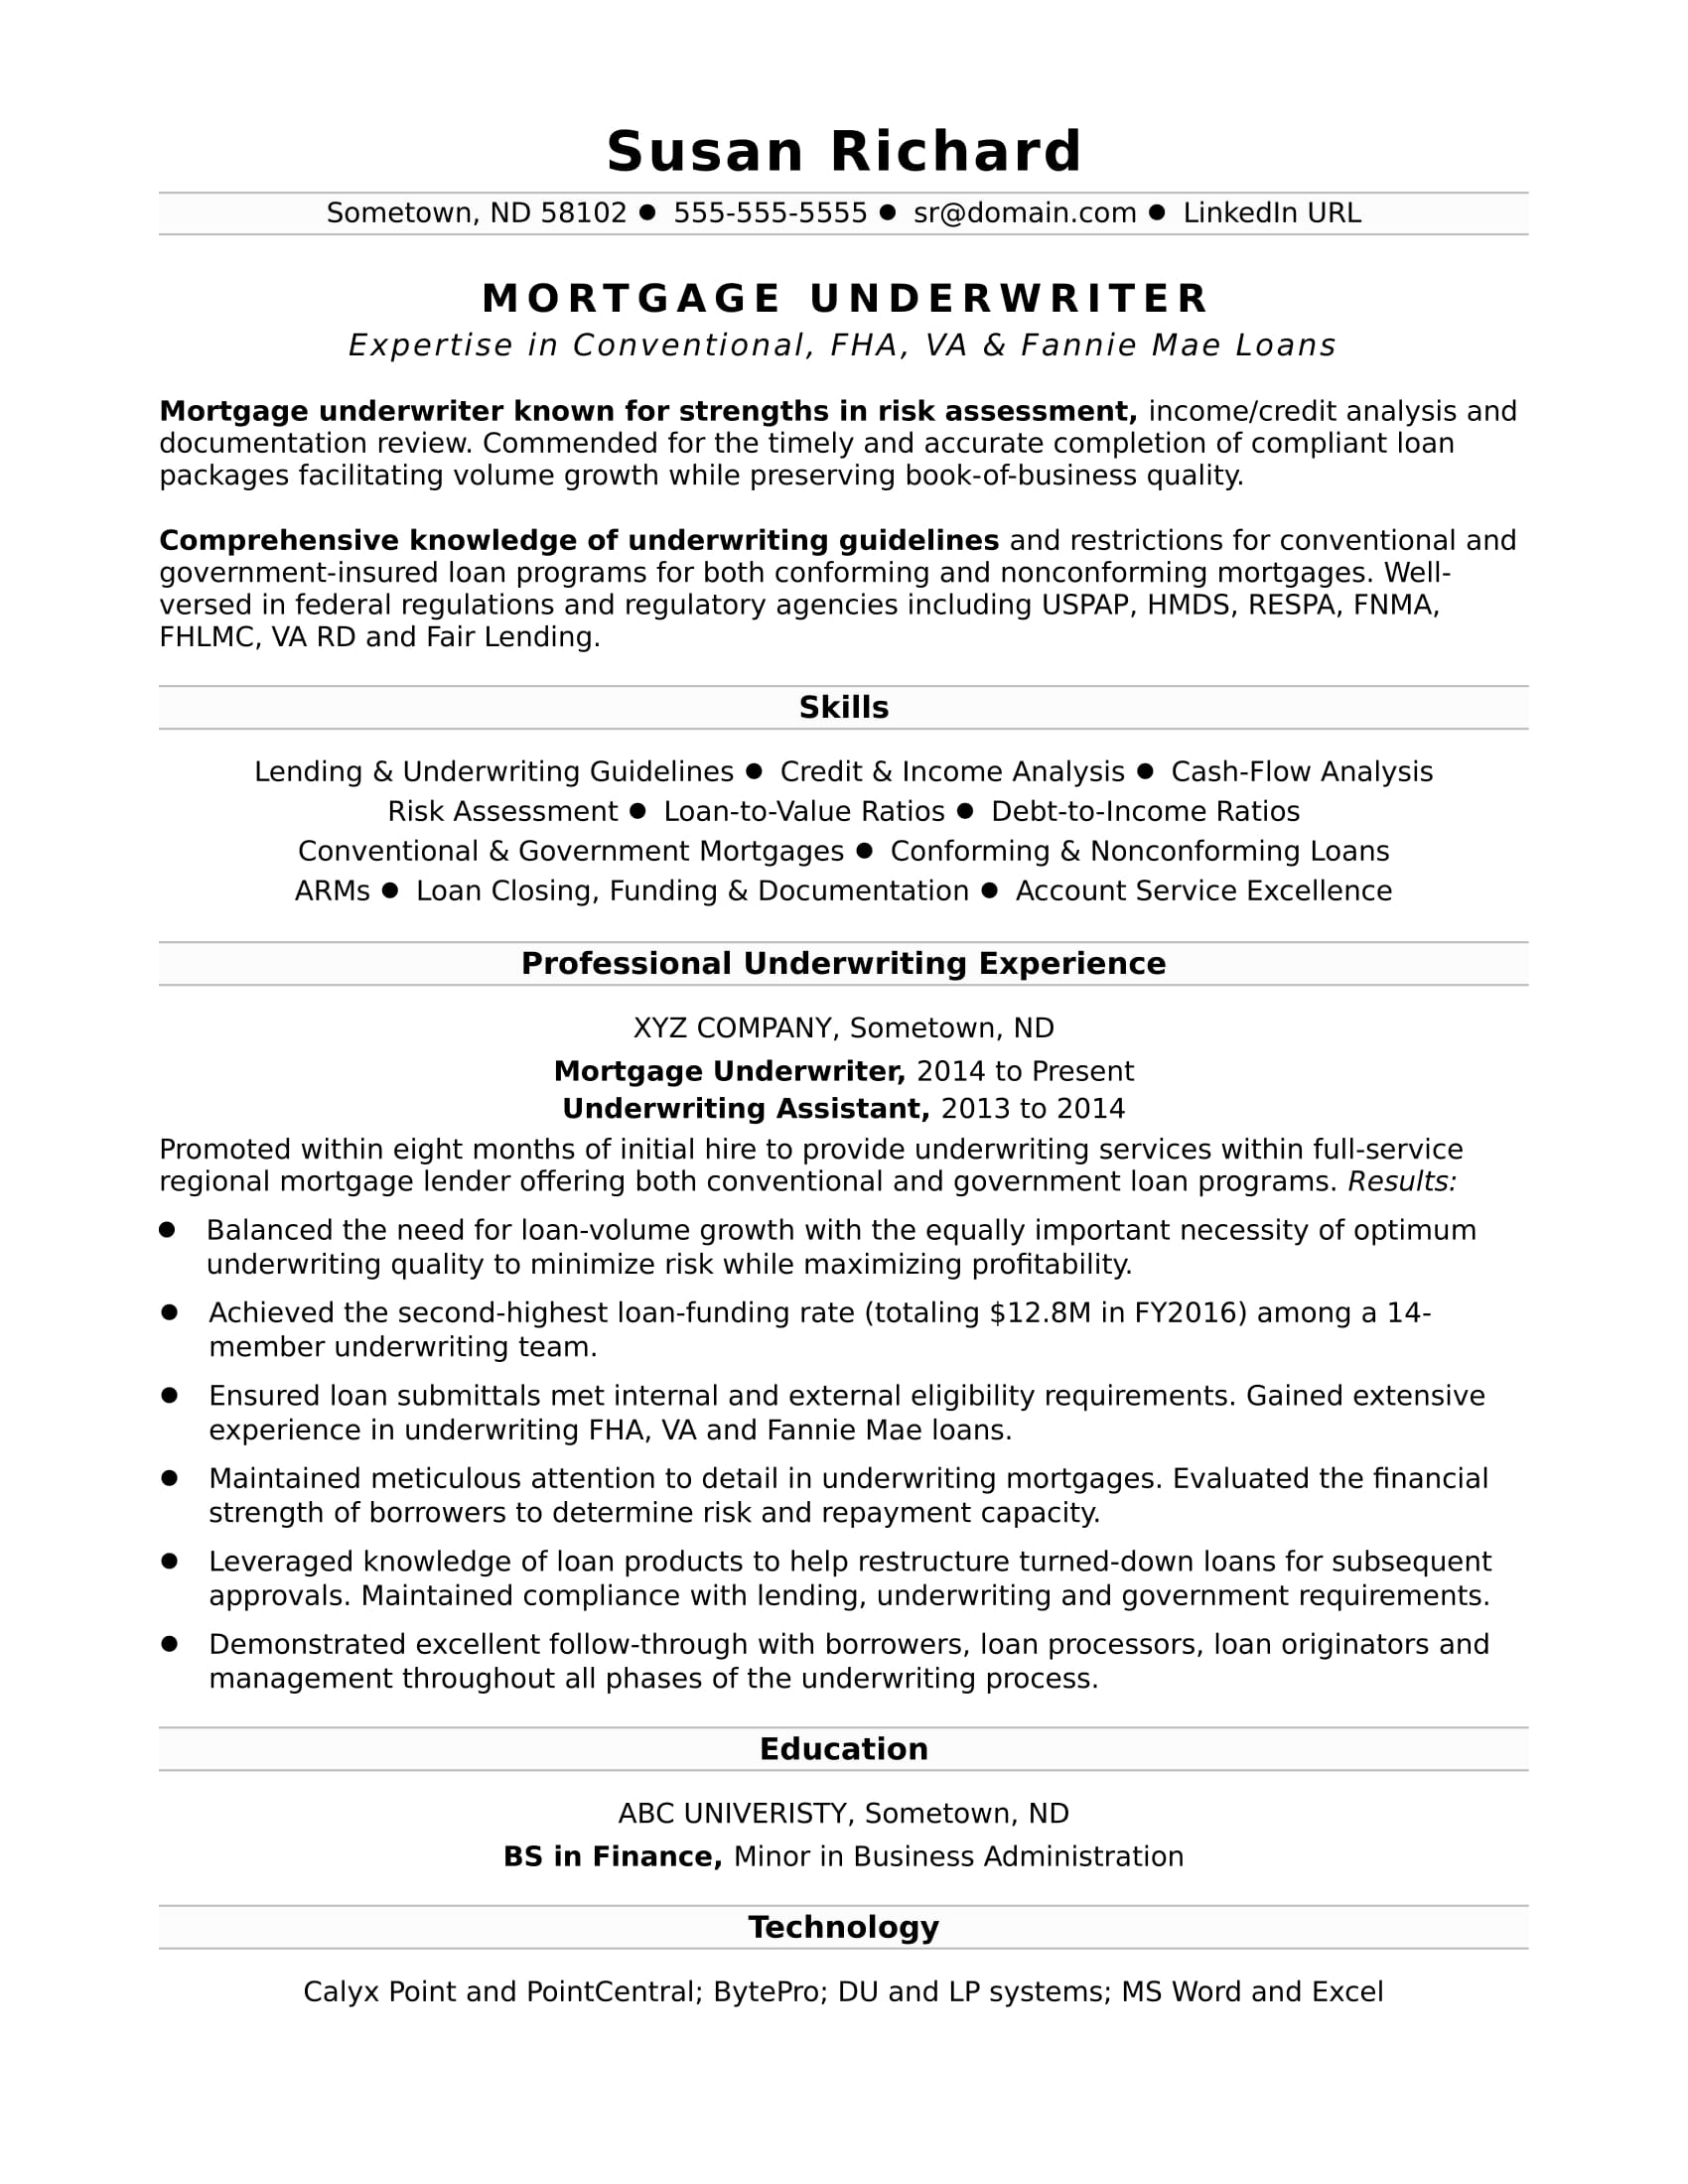 Mortgage underwriter duties